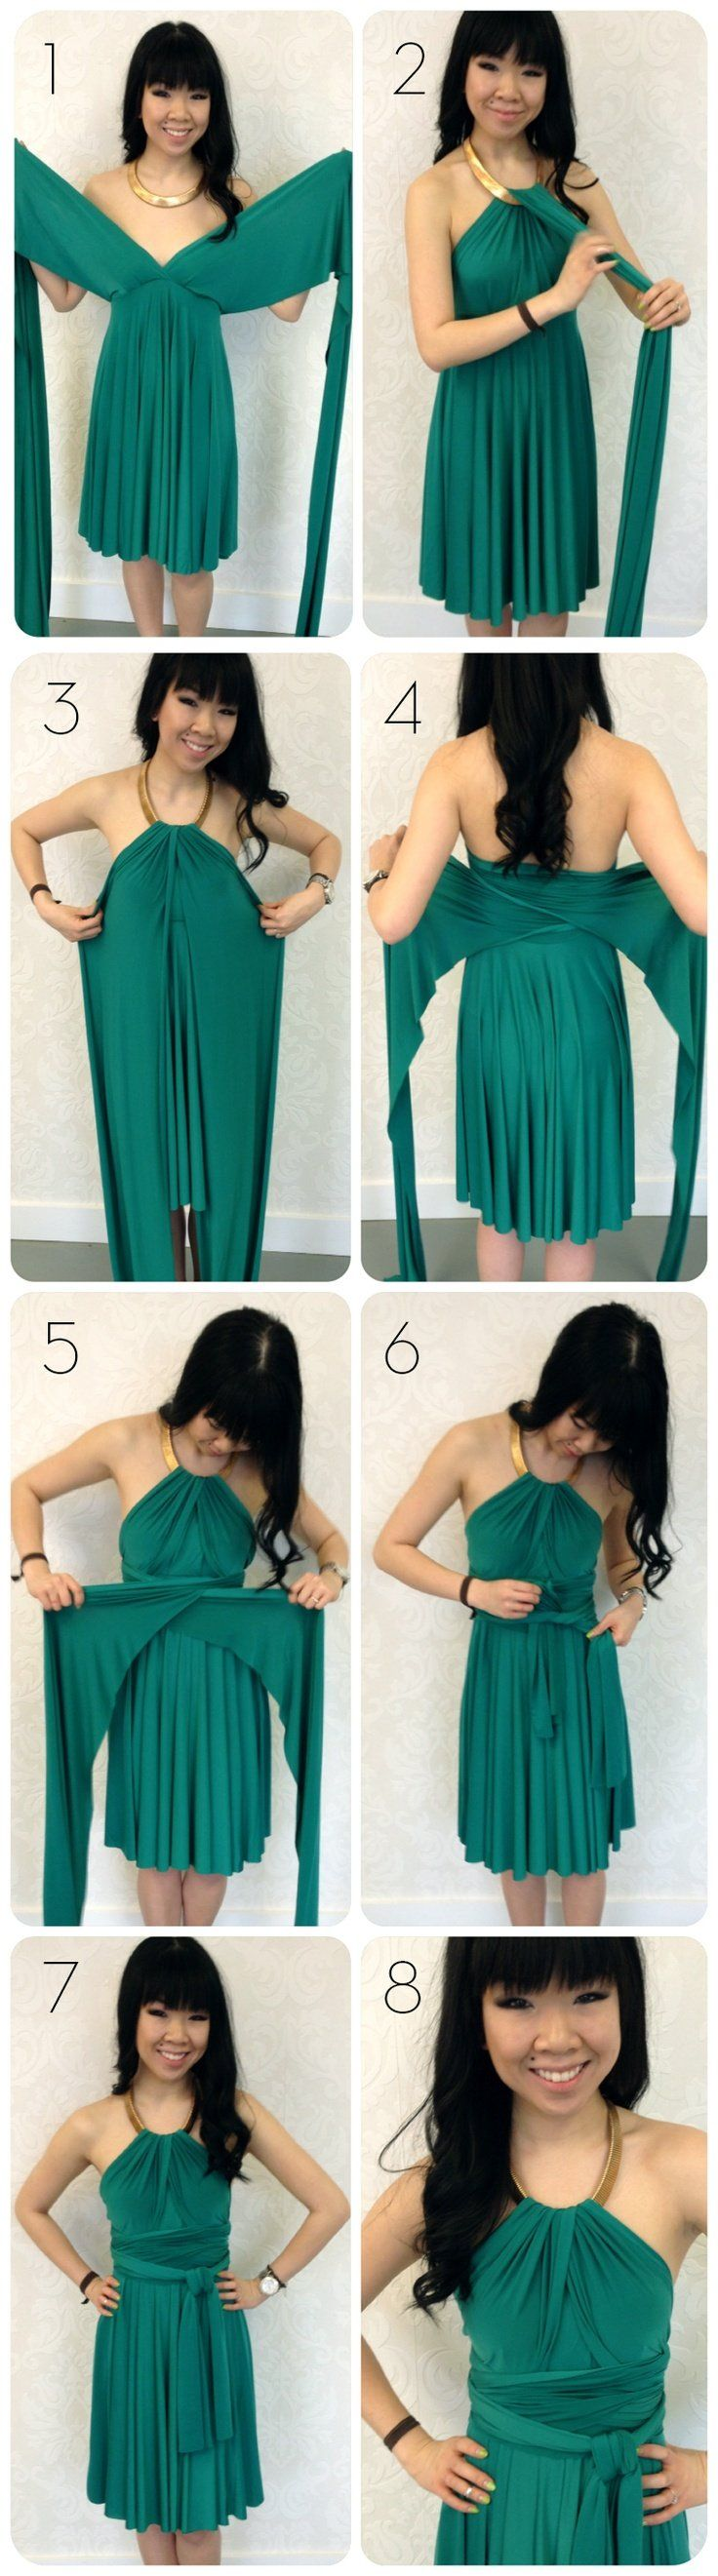 emerald green dress with gold collar – emerald green convertible dress – how to wear infinity dress with metal collar